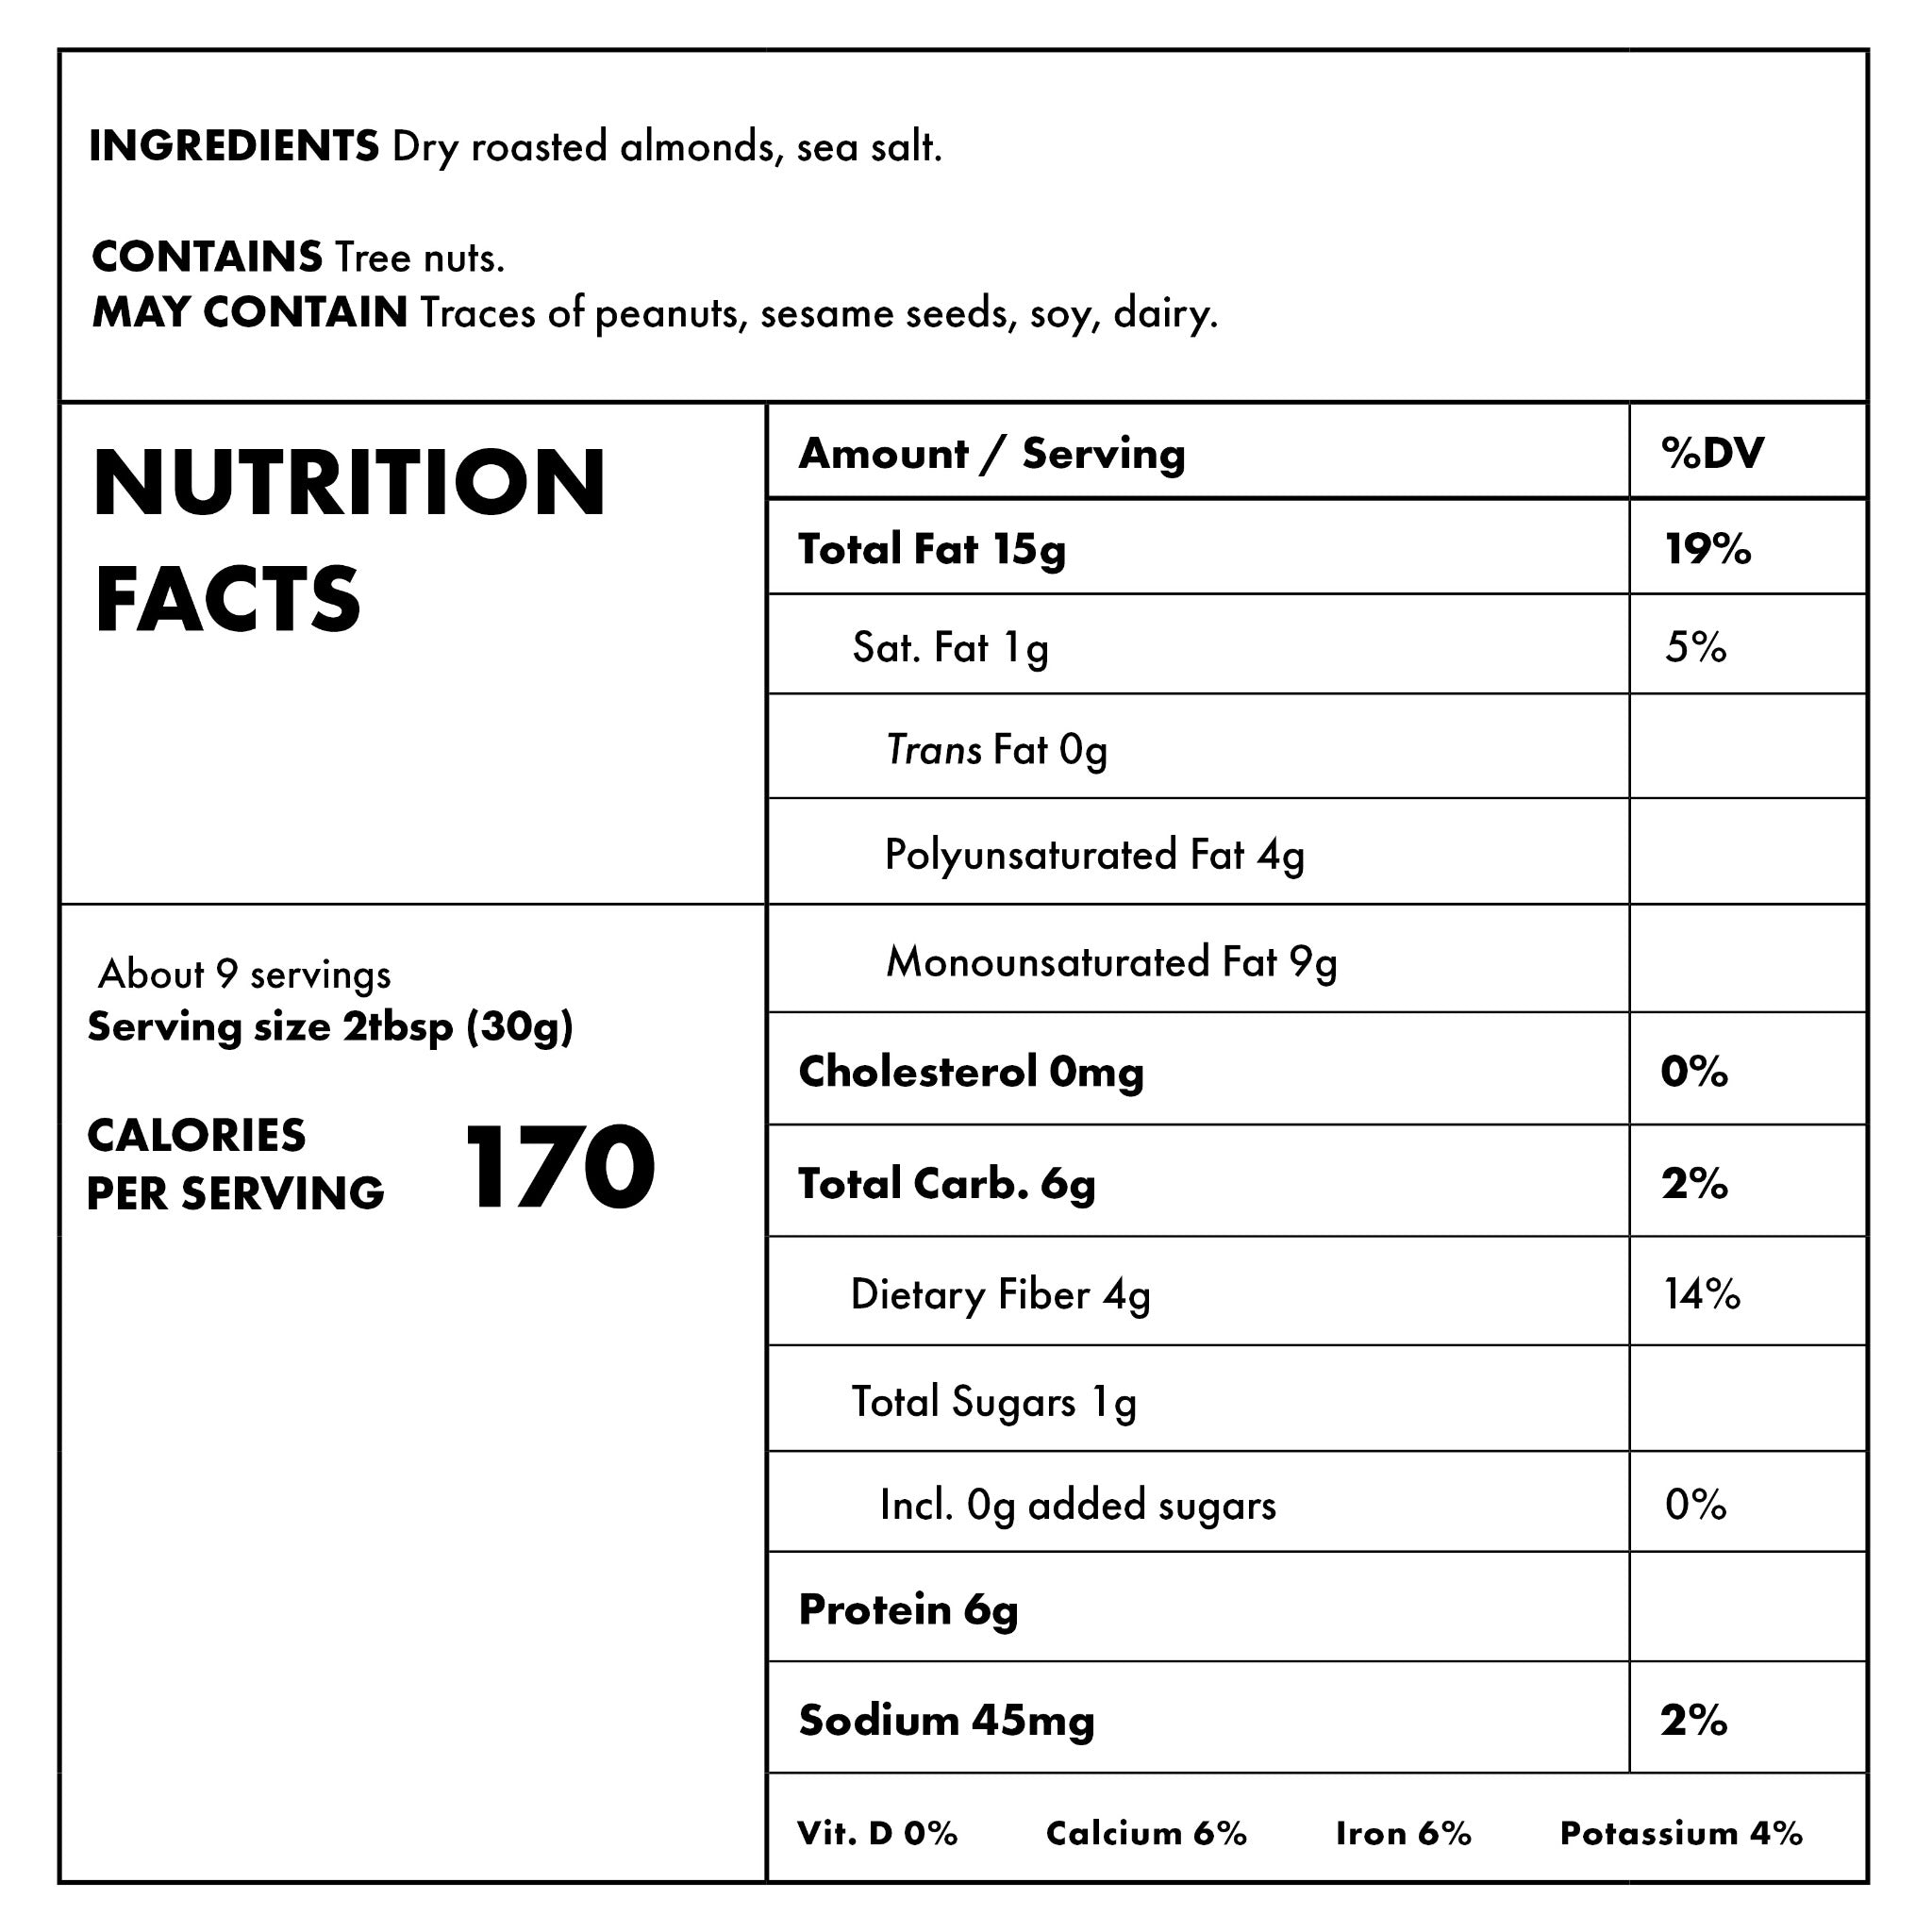 Smooth Almond 10oz Nutritional Information